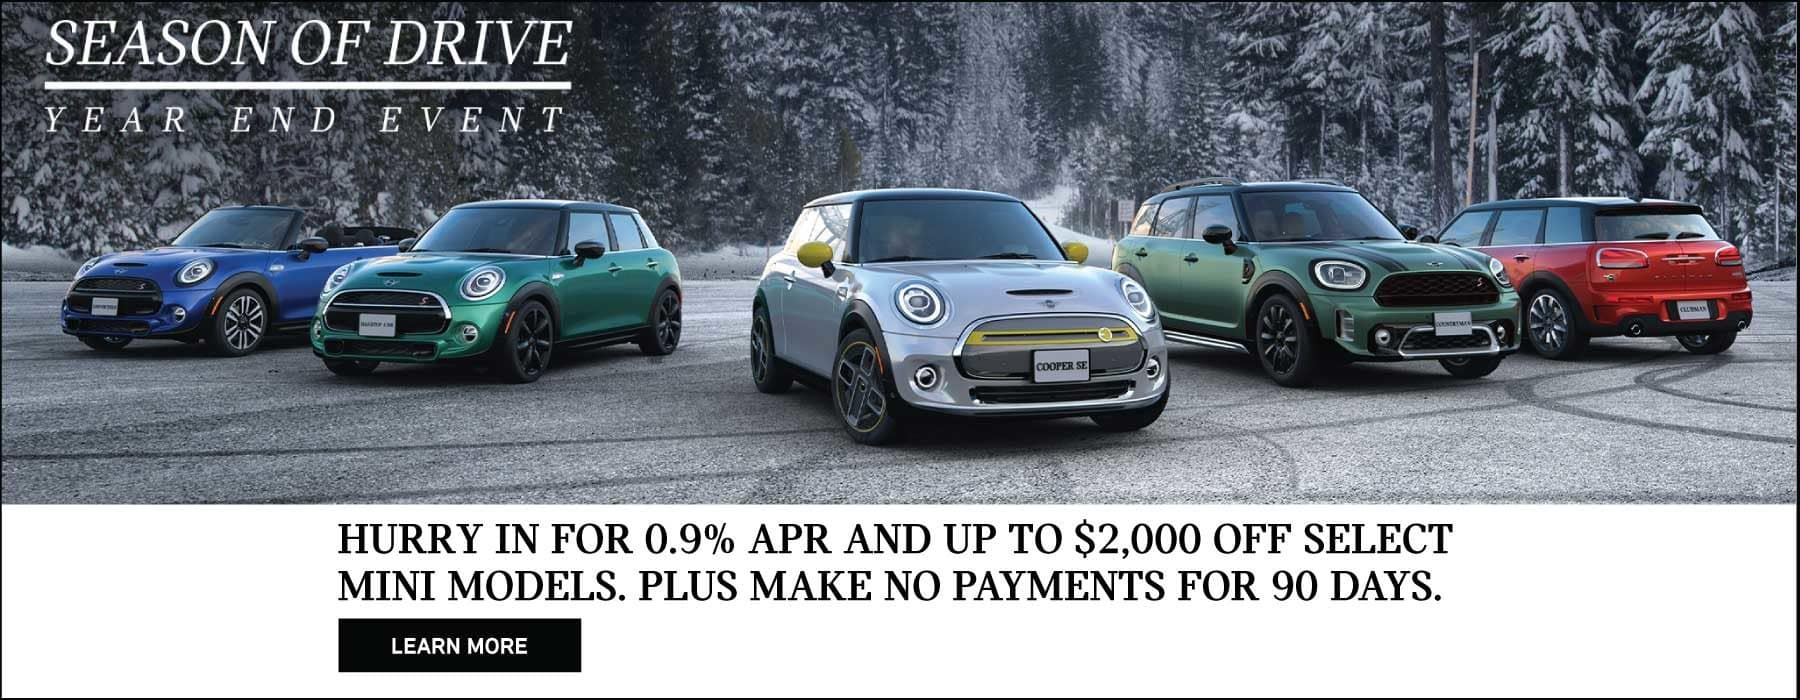 Hurry in for 0.9% APR and up to $2,000 off select MINI models. Plus make no payments for 90 days. Family of MINIs parked on snowy road. See dealer for complete details.